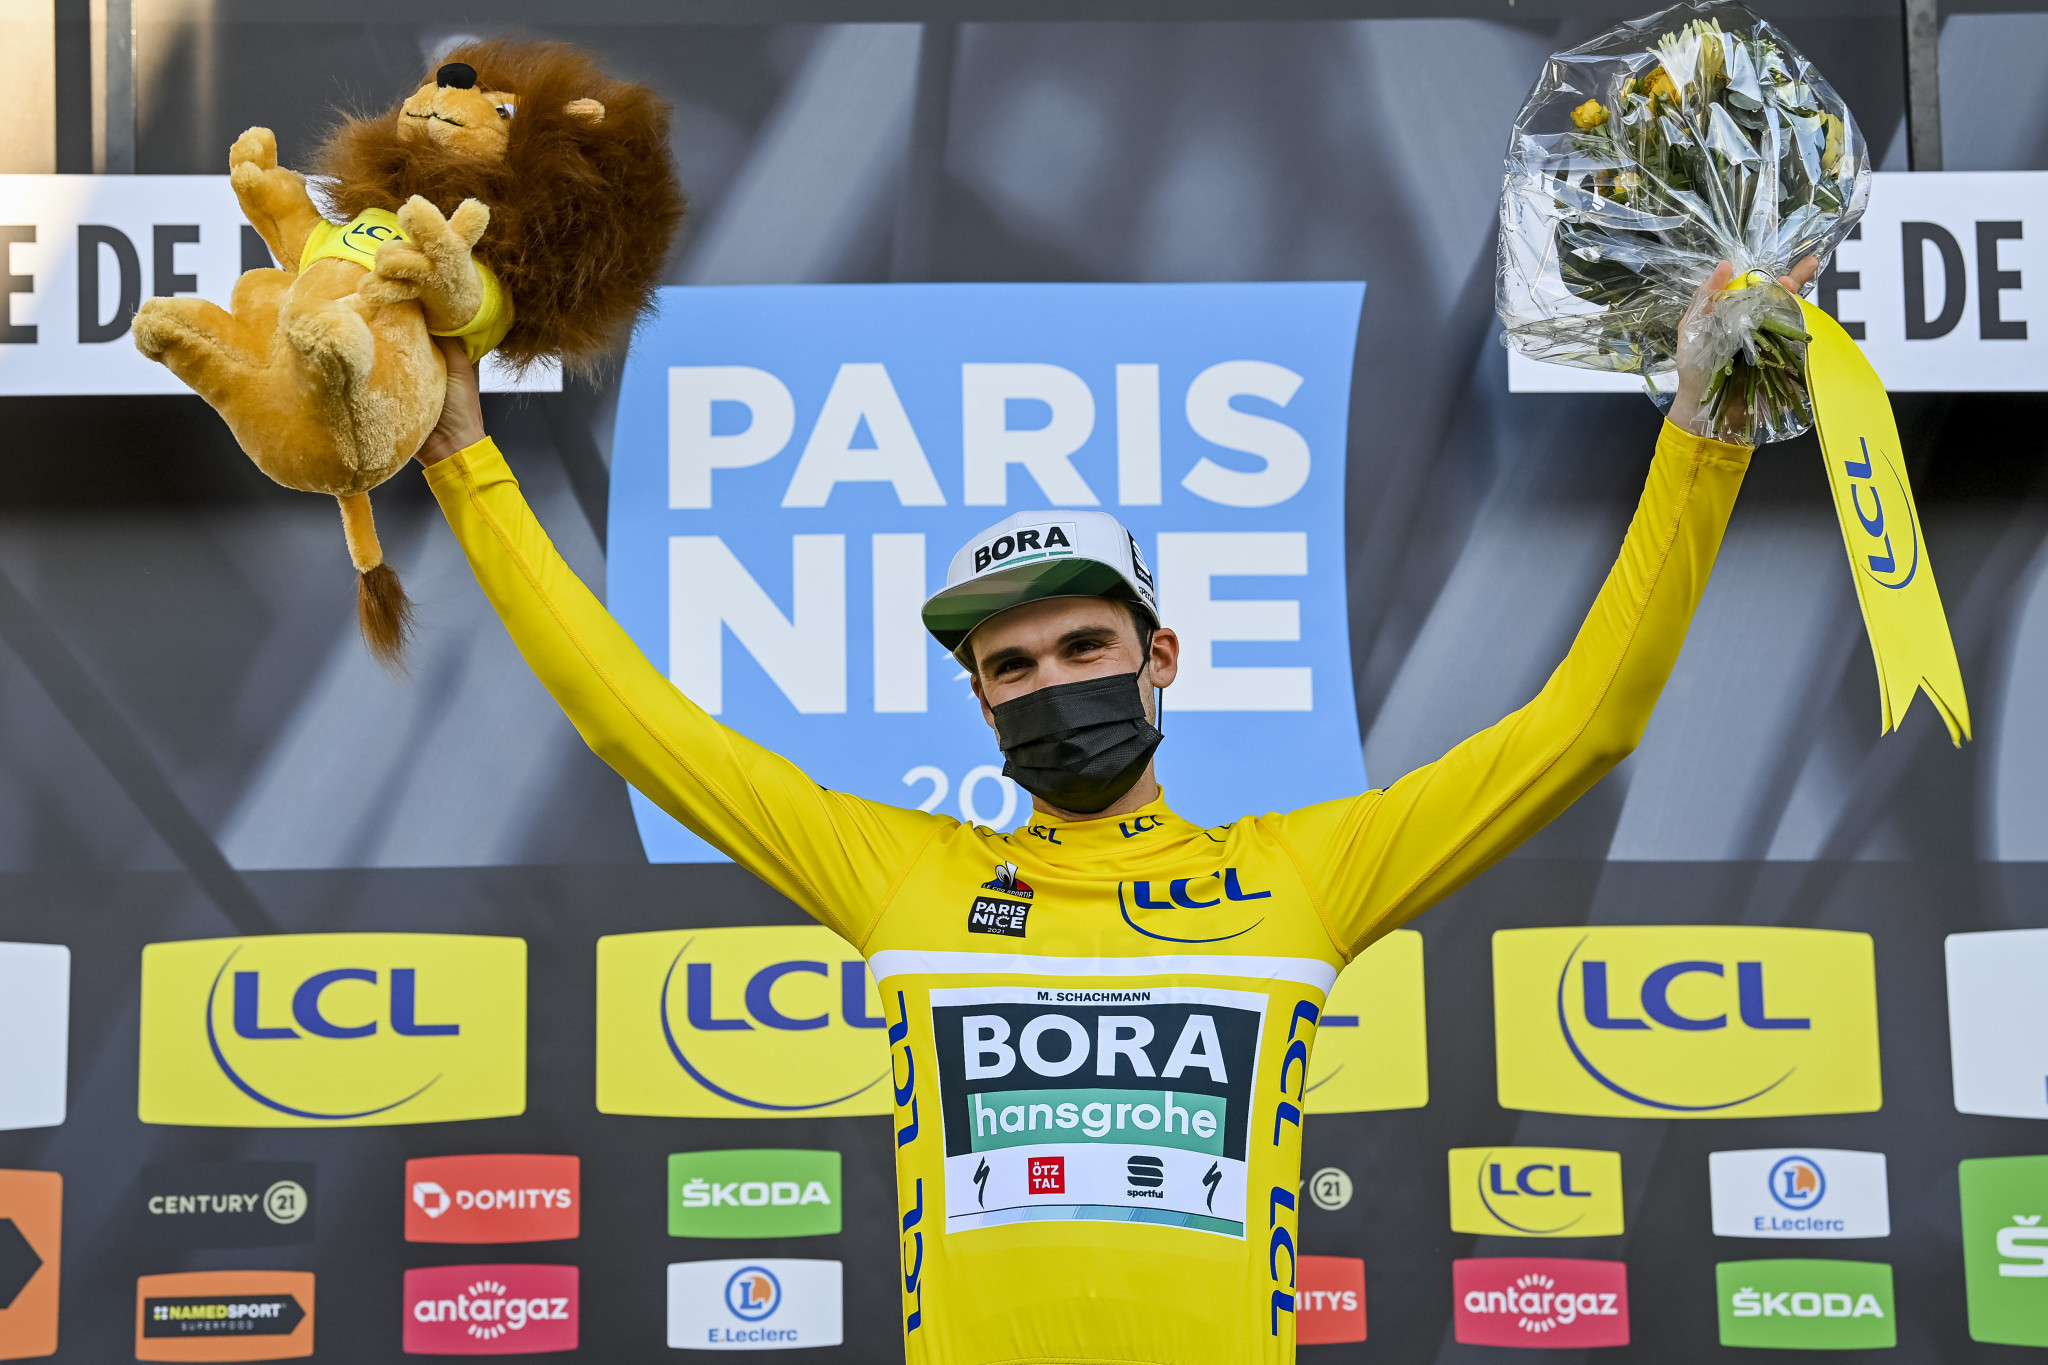 Schachmann wins Paris-Nice for second straight year as crashes end Roglič's hopes